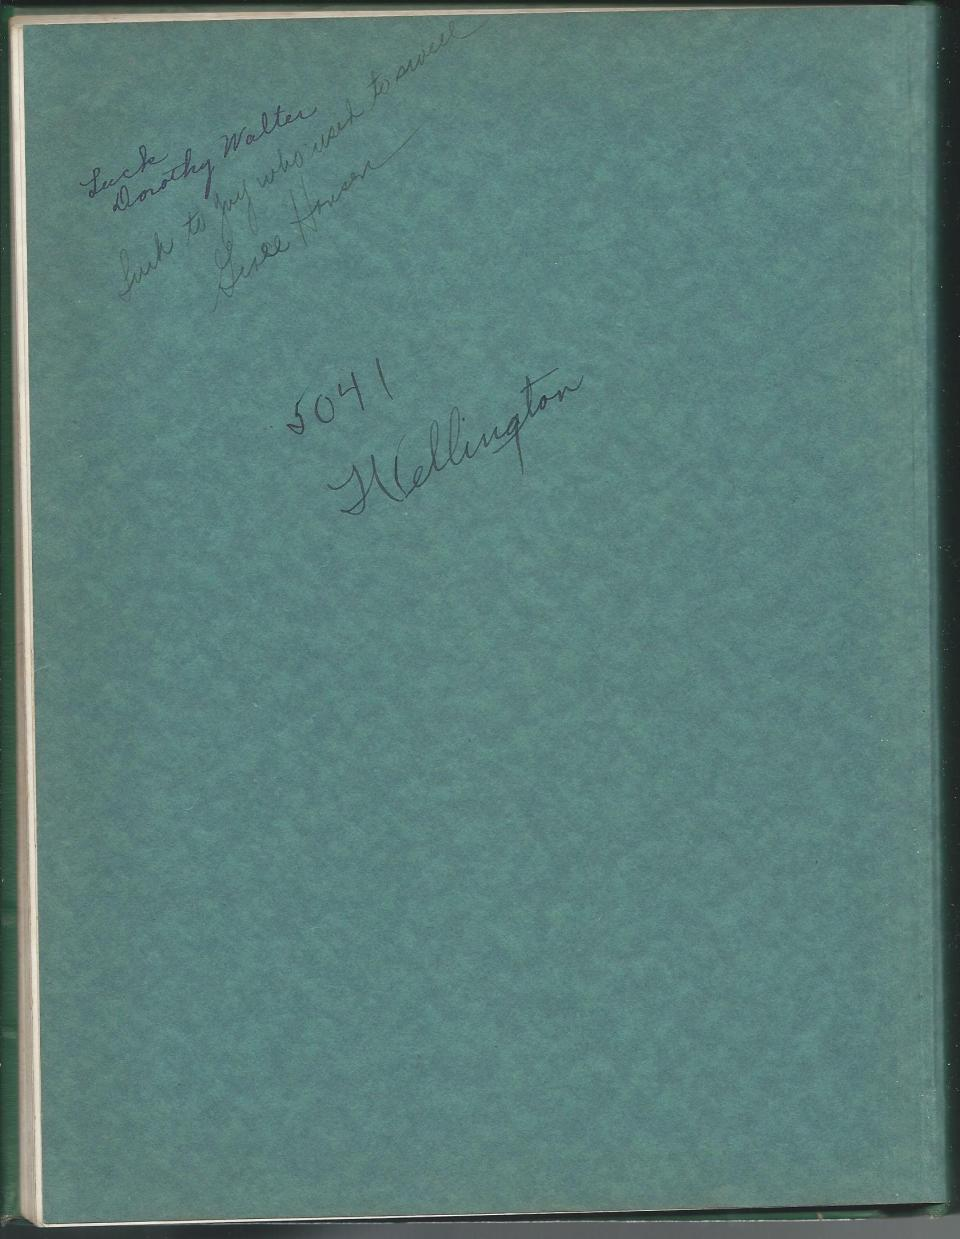 1938 HS Yearbook pg back cover -2